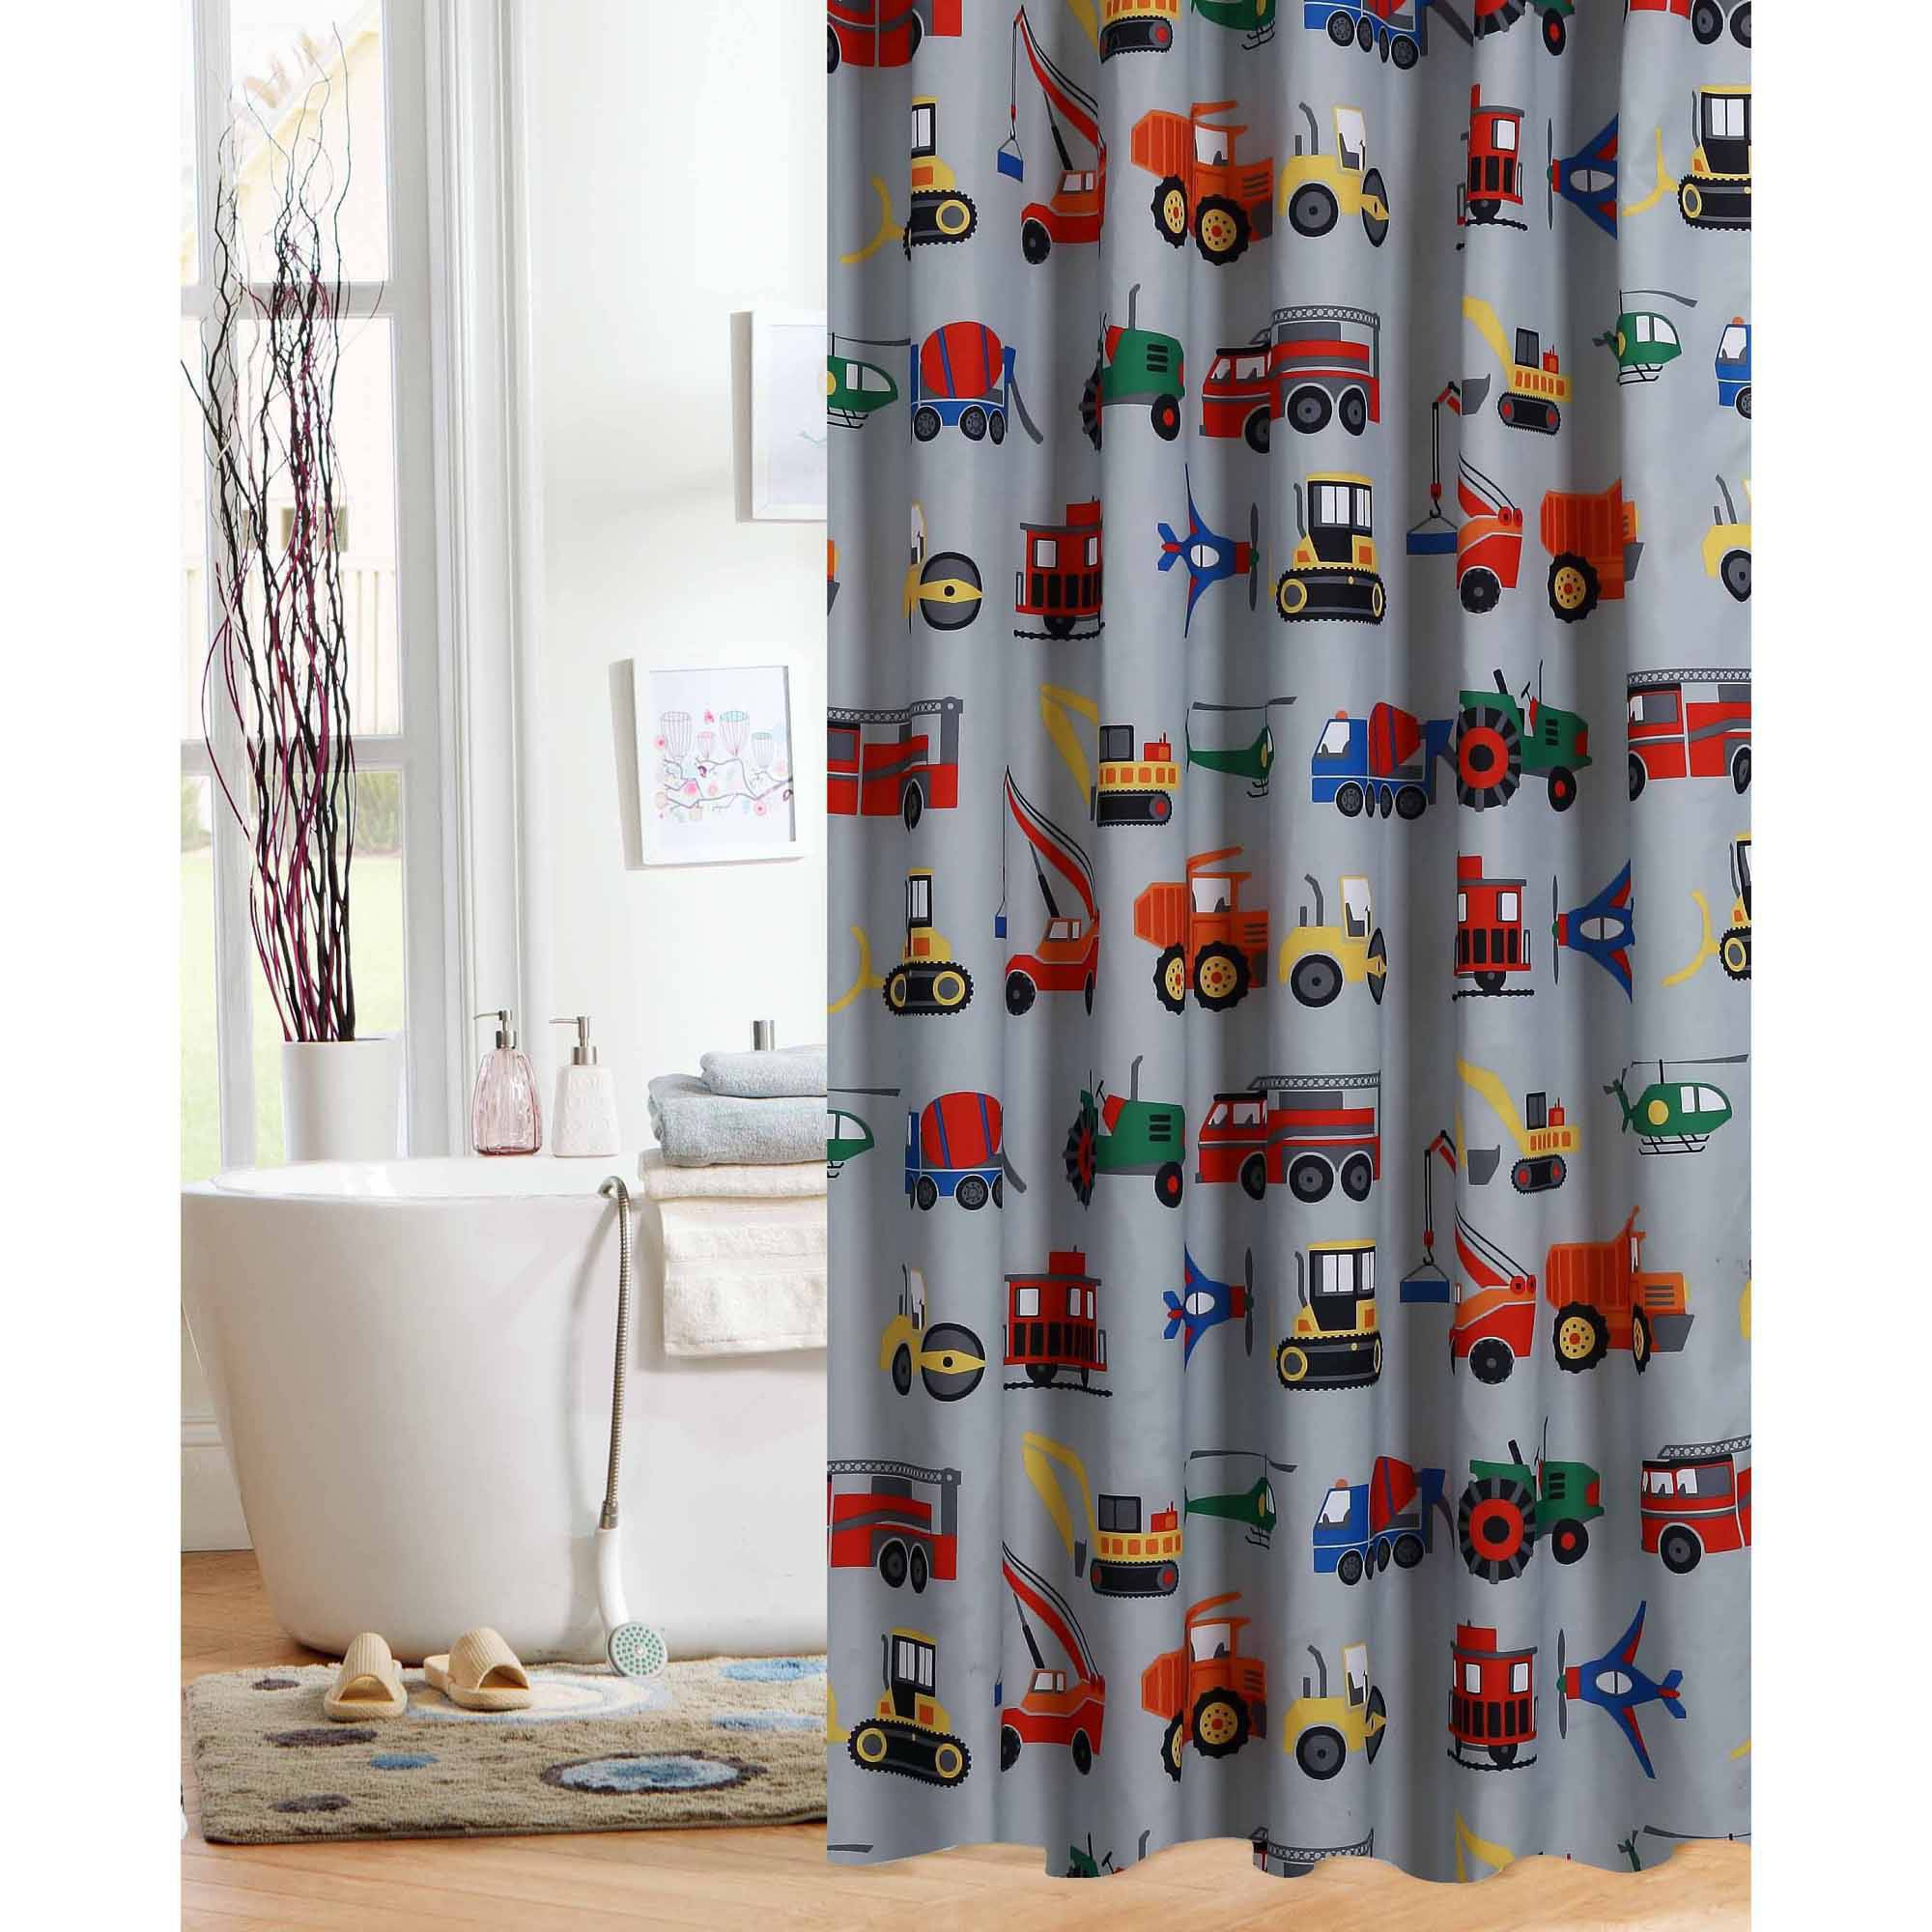 Cute Girly Shower Curtains Cute Girly Shower Curtains Shower Curtains Ideas